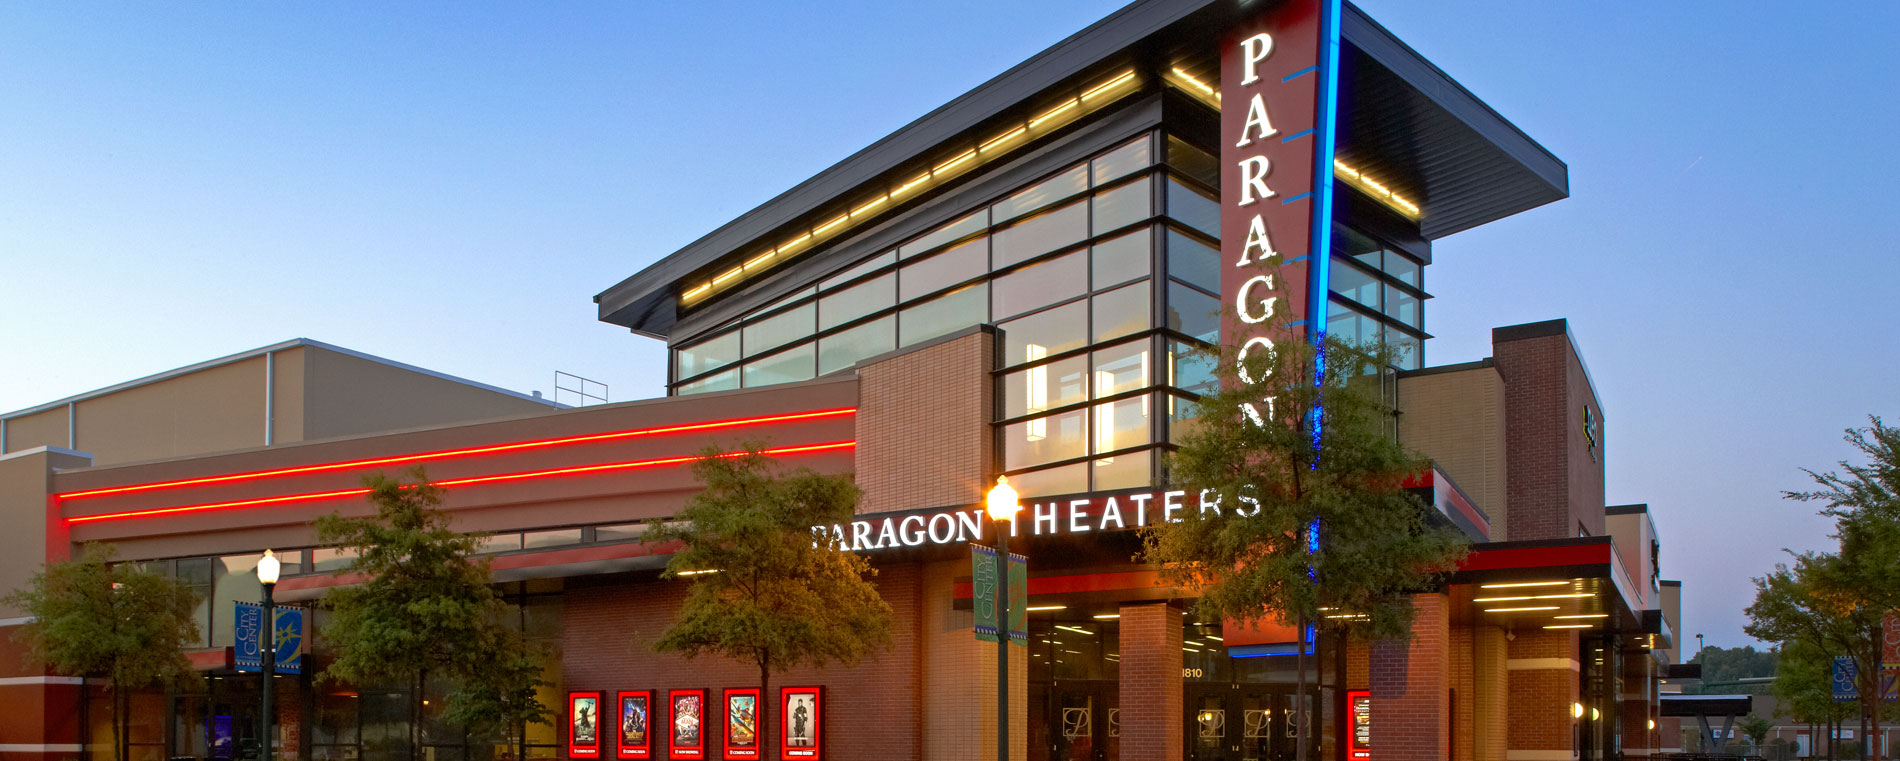 Paragon Movie Theater at City Center